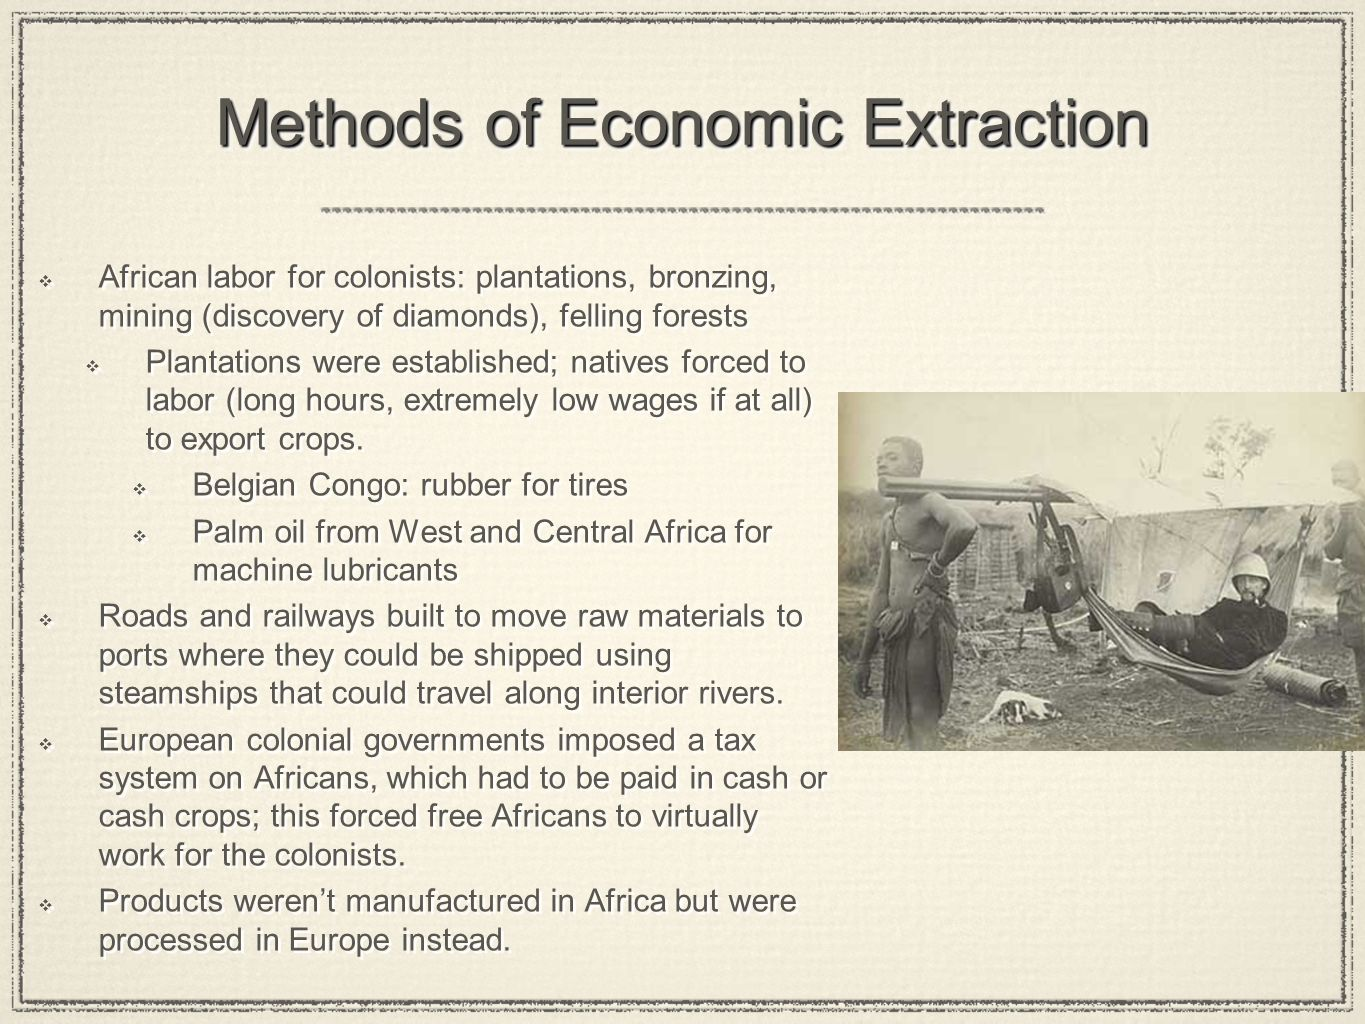 Methods of Economic Extraction  African labor for colonists: plantations, bronzing, mining (discovery of diamonds), felling forests  Plantations were established; natives forced to labor (long hours, extremely low wages if at all) to export crops.